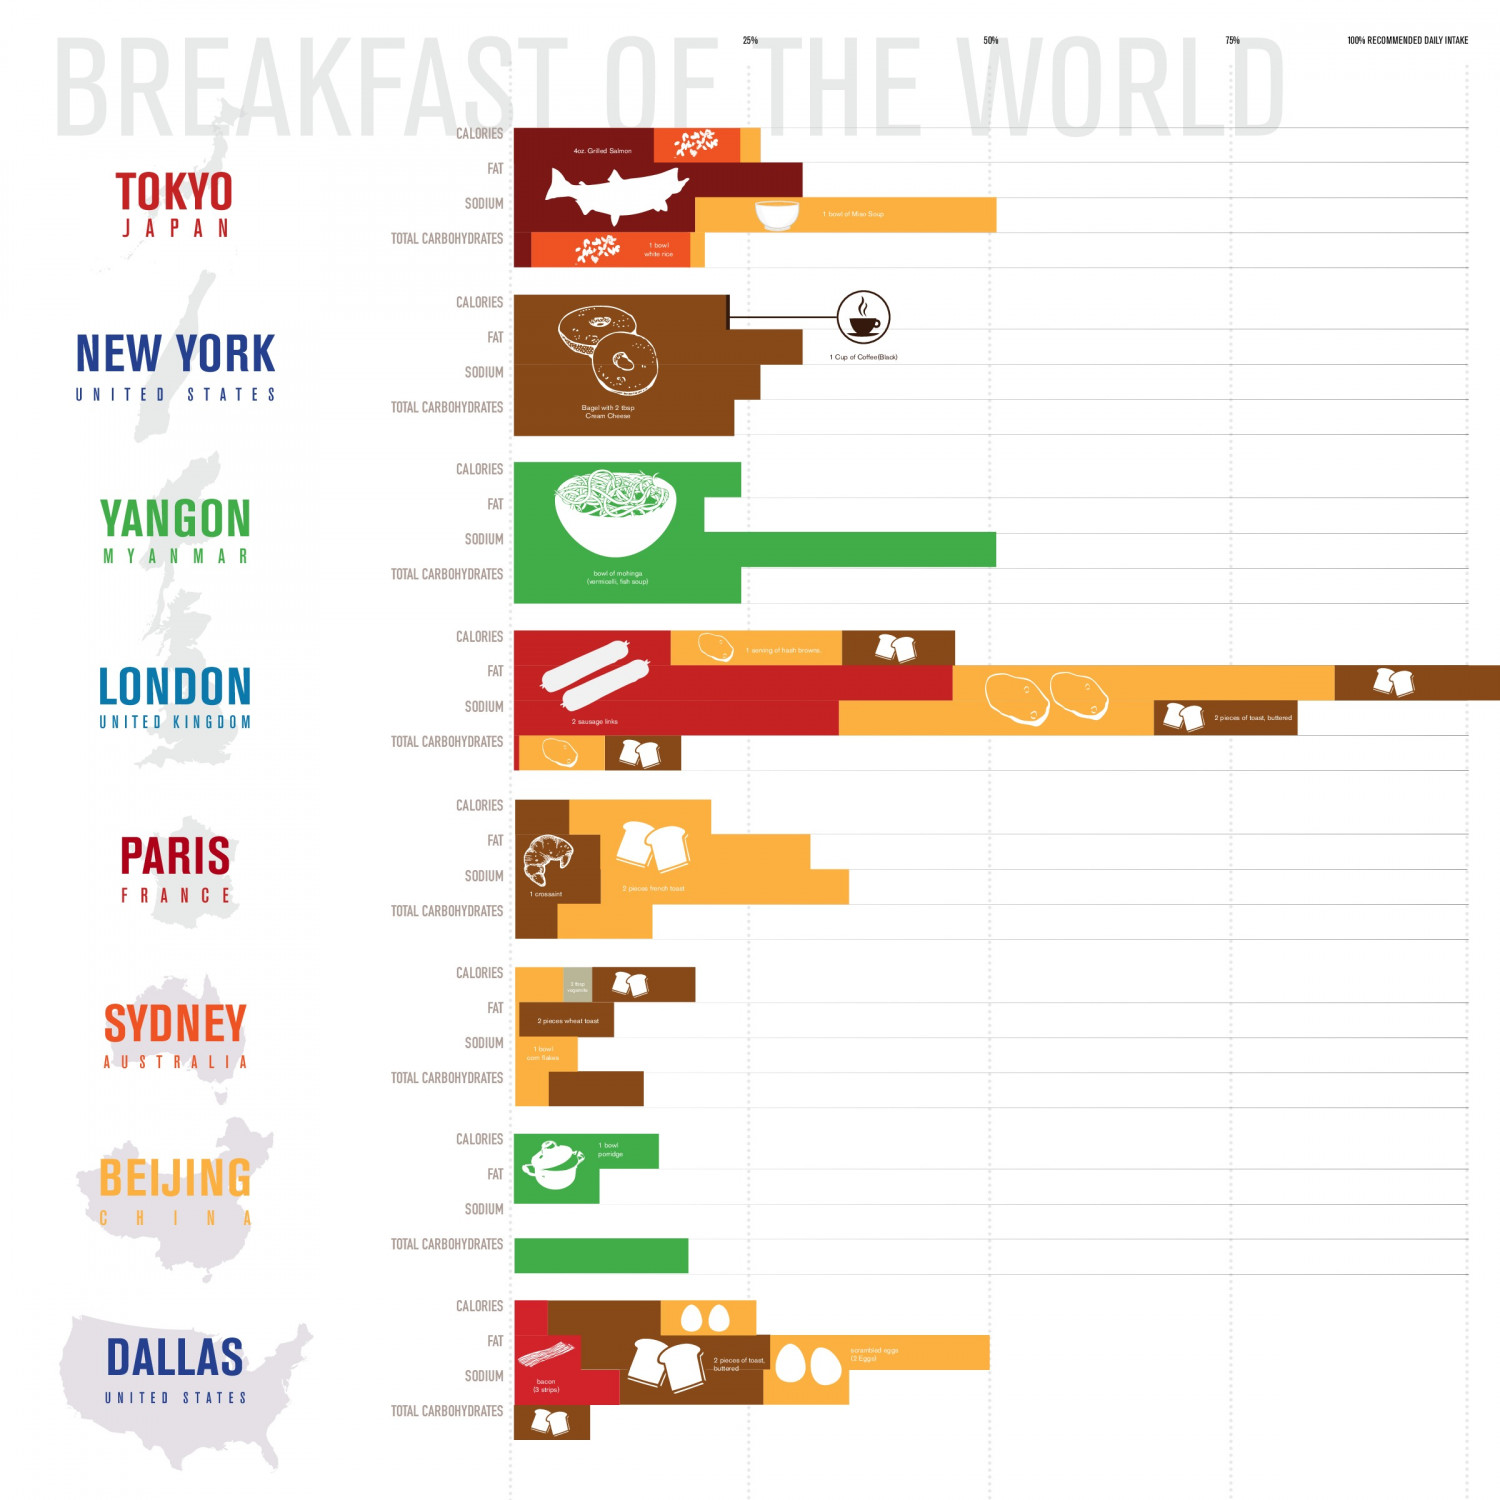 Breakfasts of the World Infographic